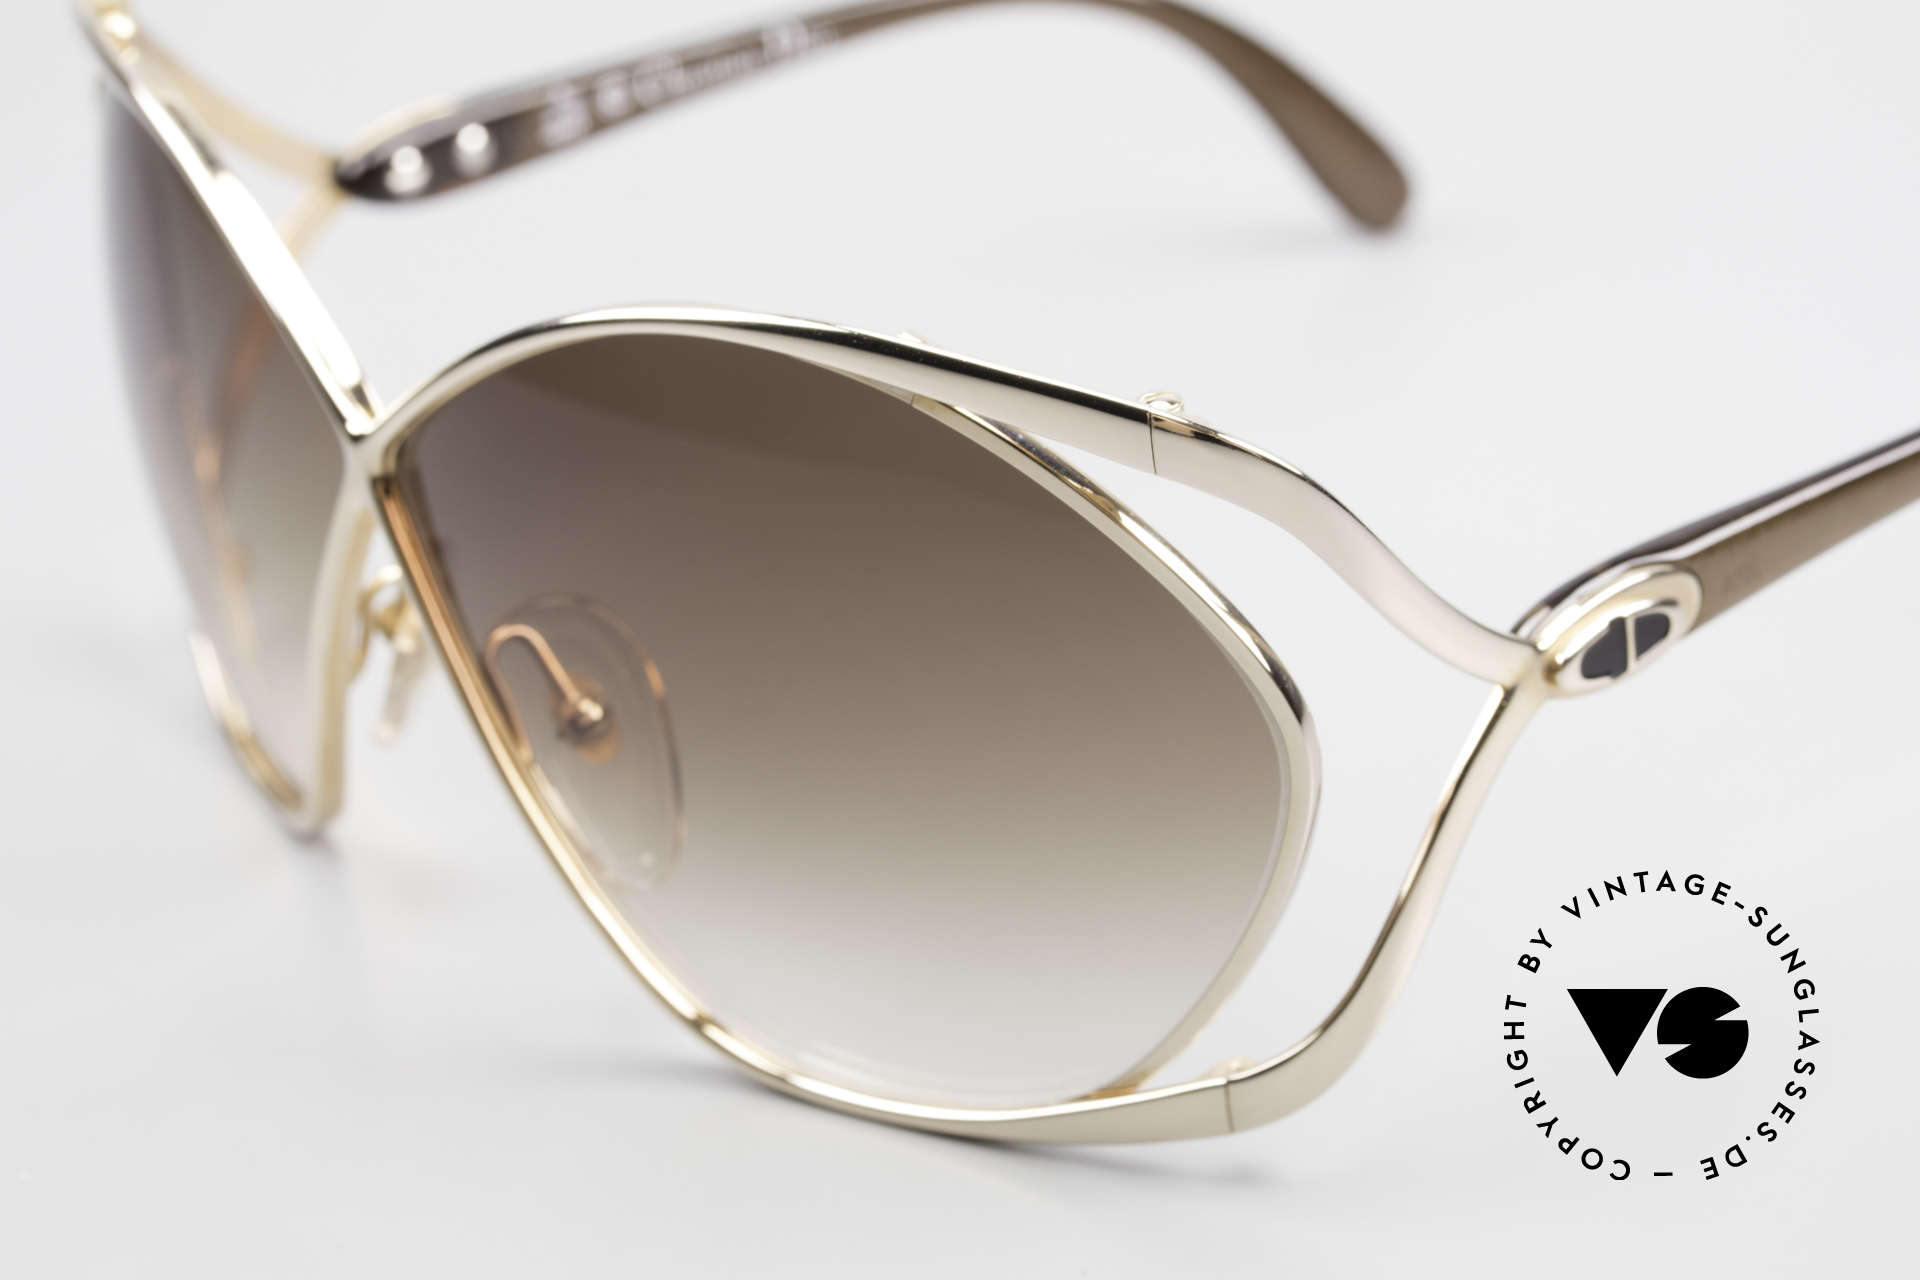 Christian Dior 2056 Butterfly 80's Sunglasses, GOLD-PLATED frame with brown lenses (100% UV), Made for Women